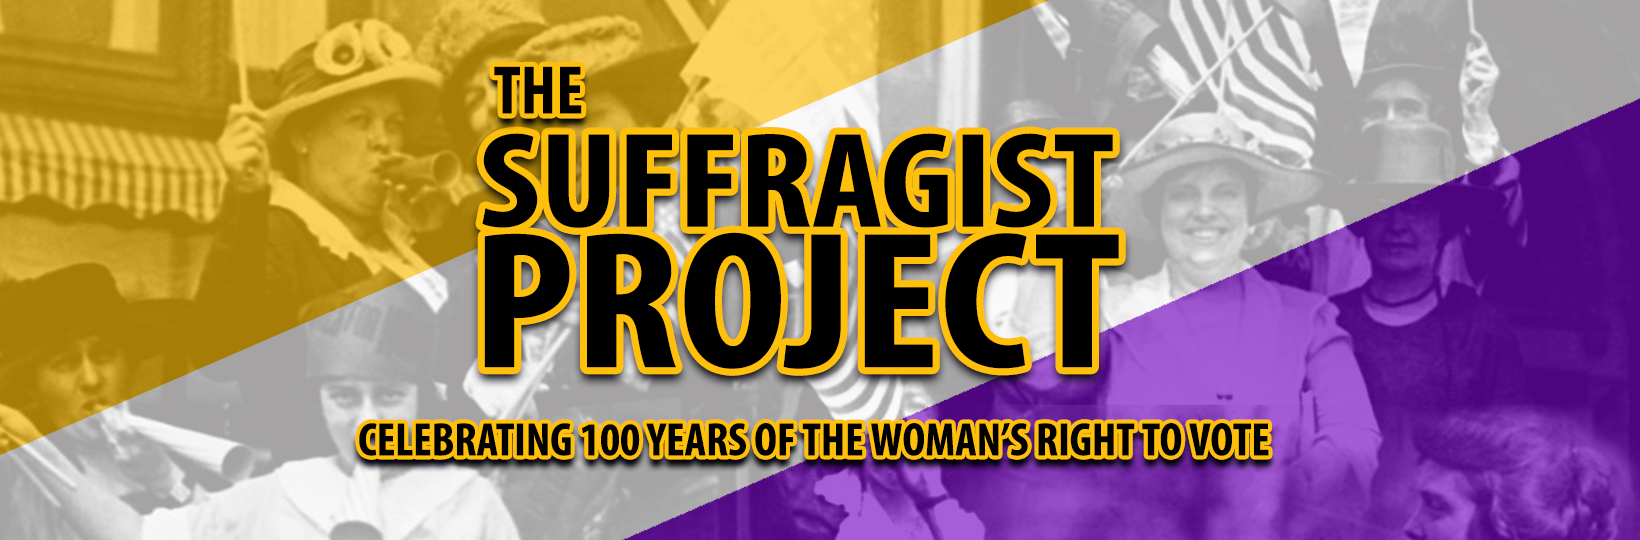 The Suffragist Project